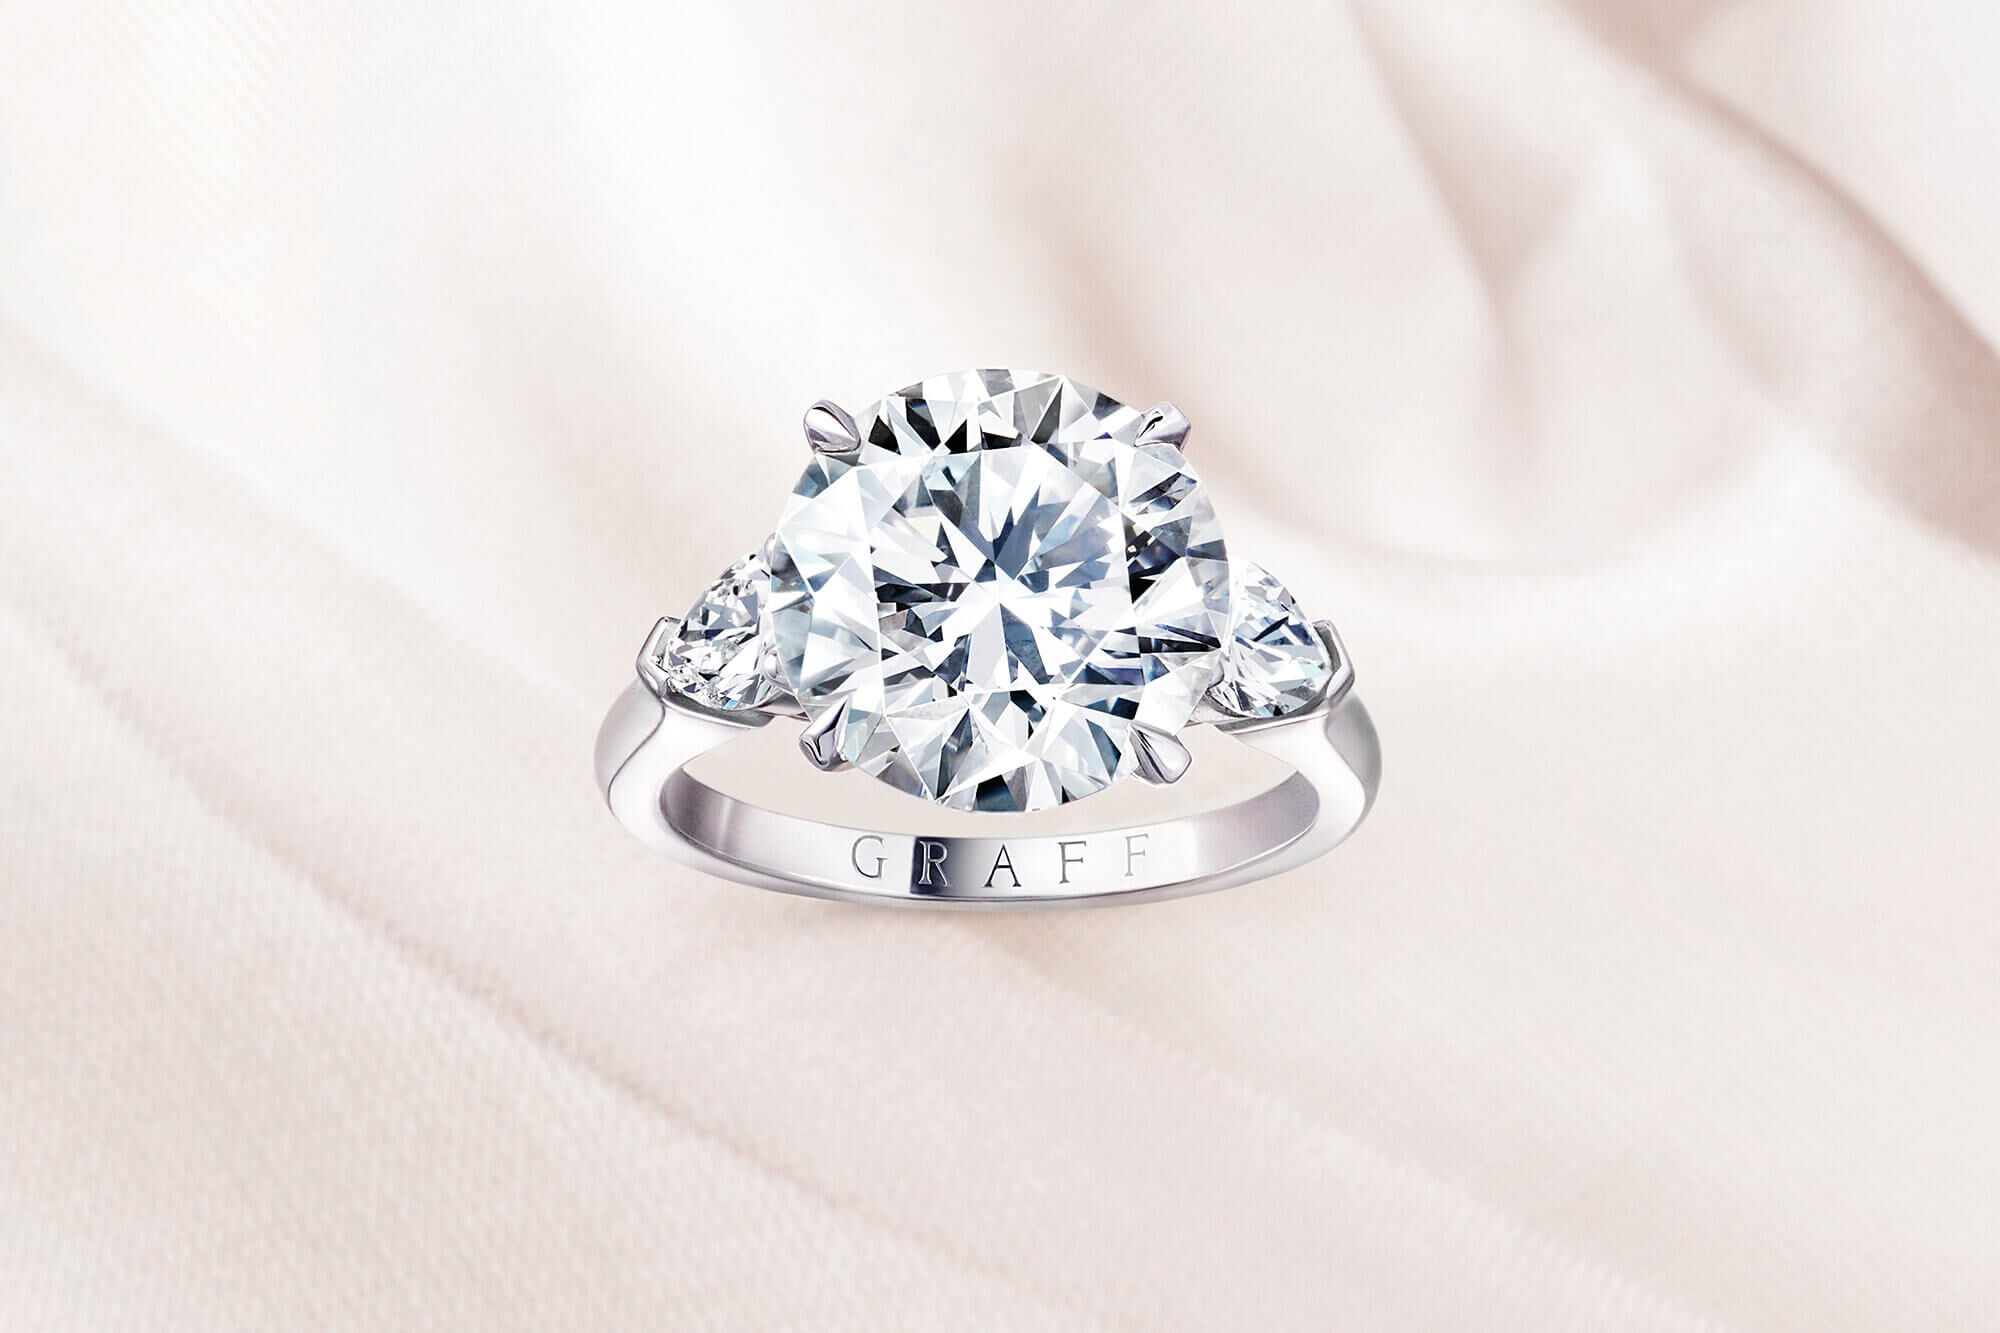 A Graff round diamond Promise setting engagement ring